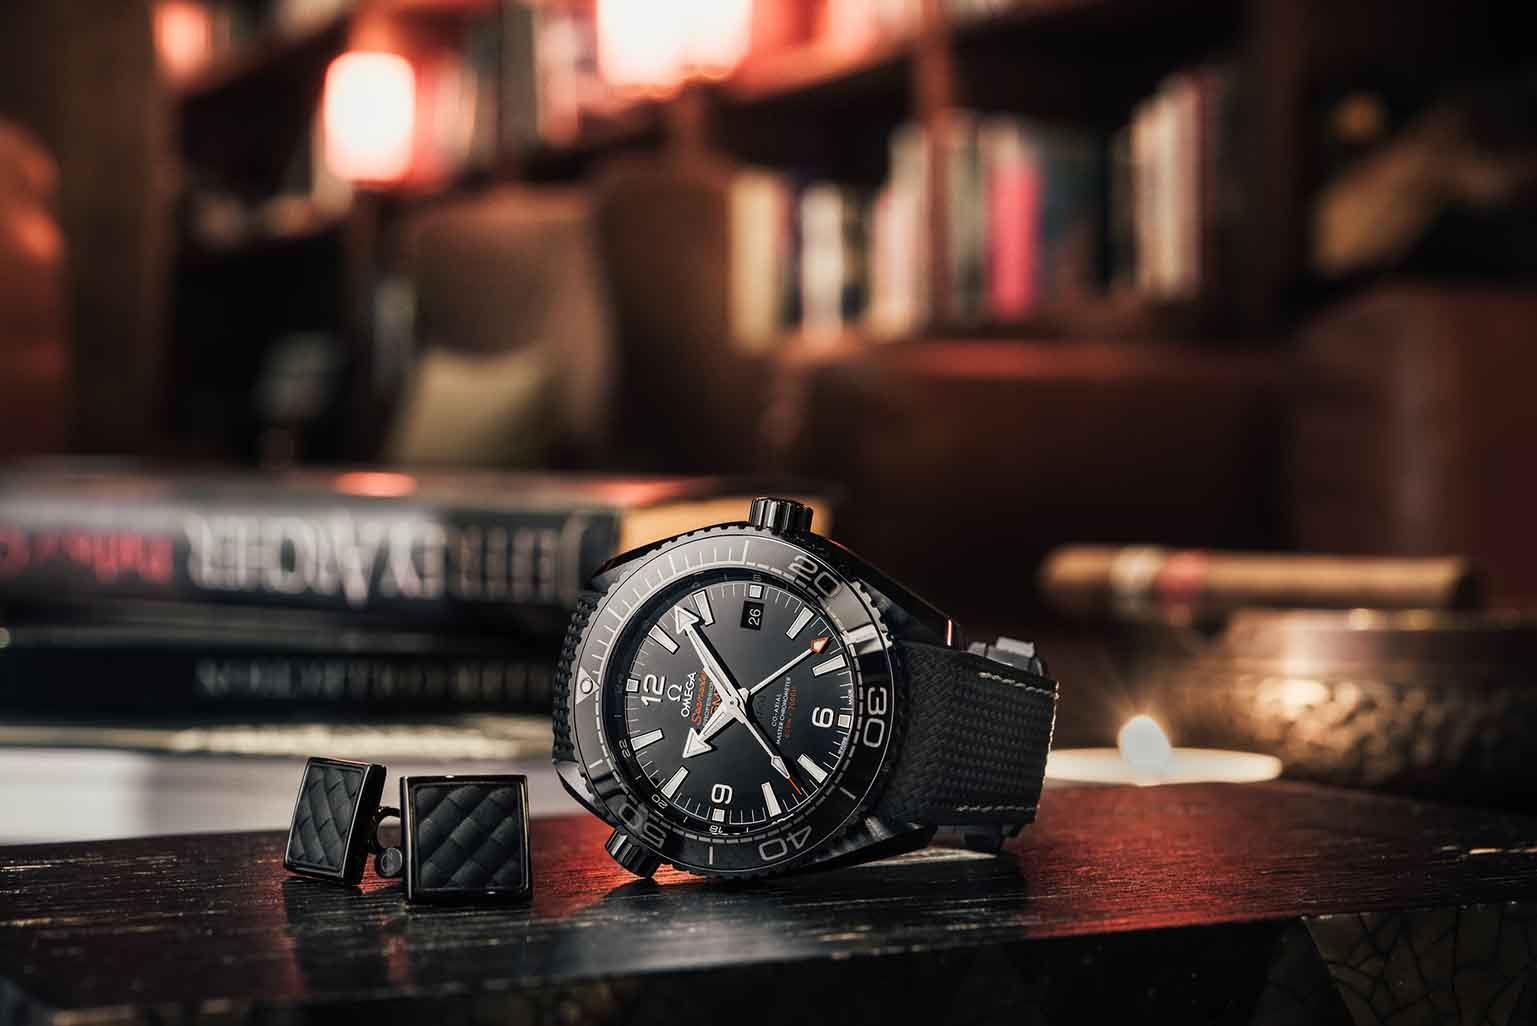 The Luxury Trends Omega Seamaster